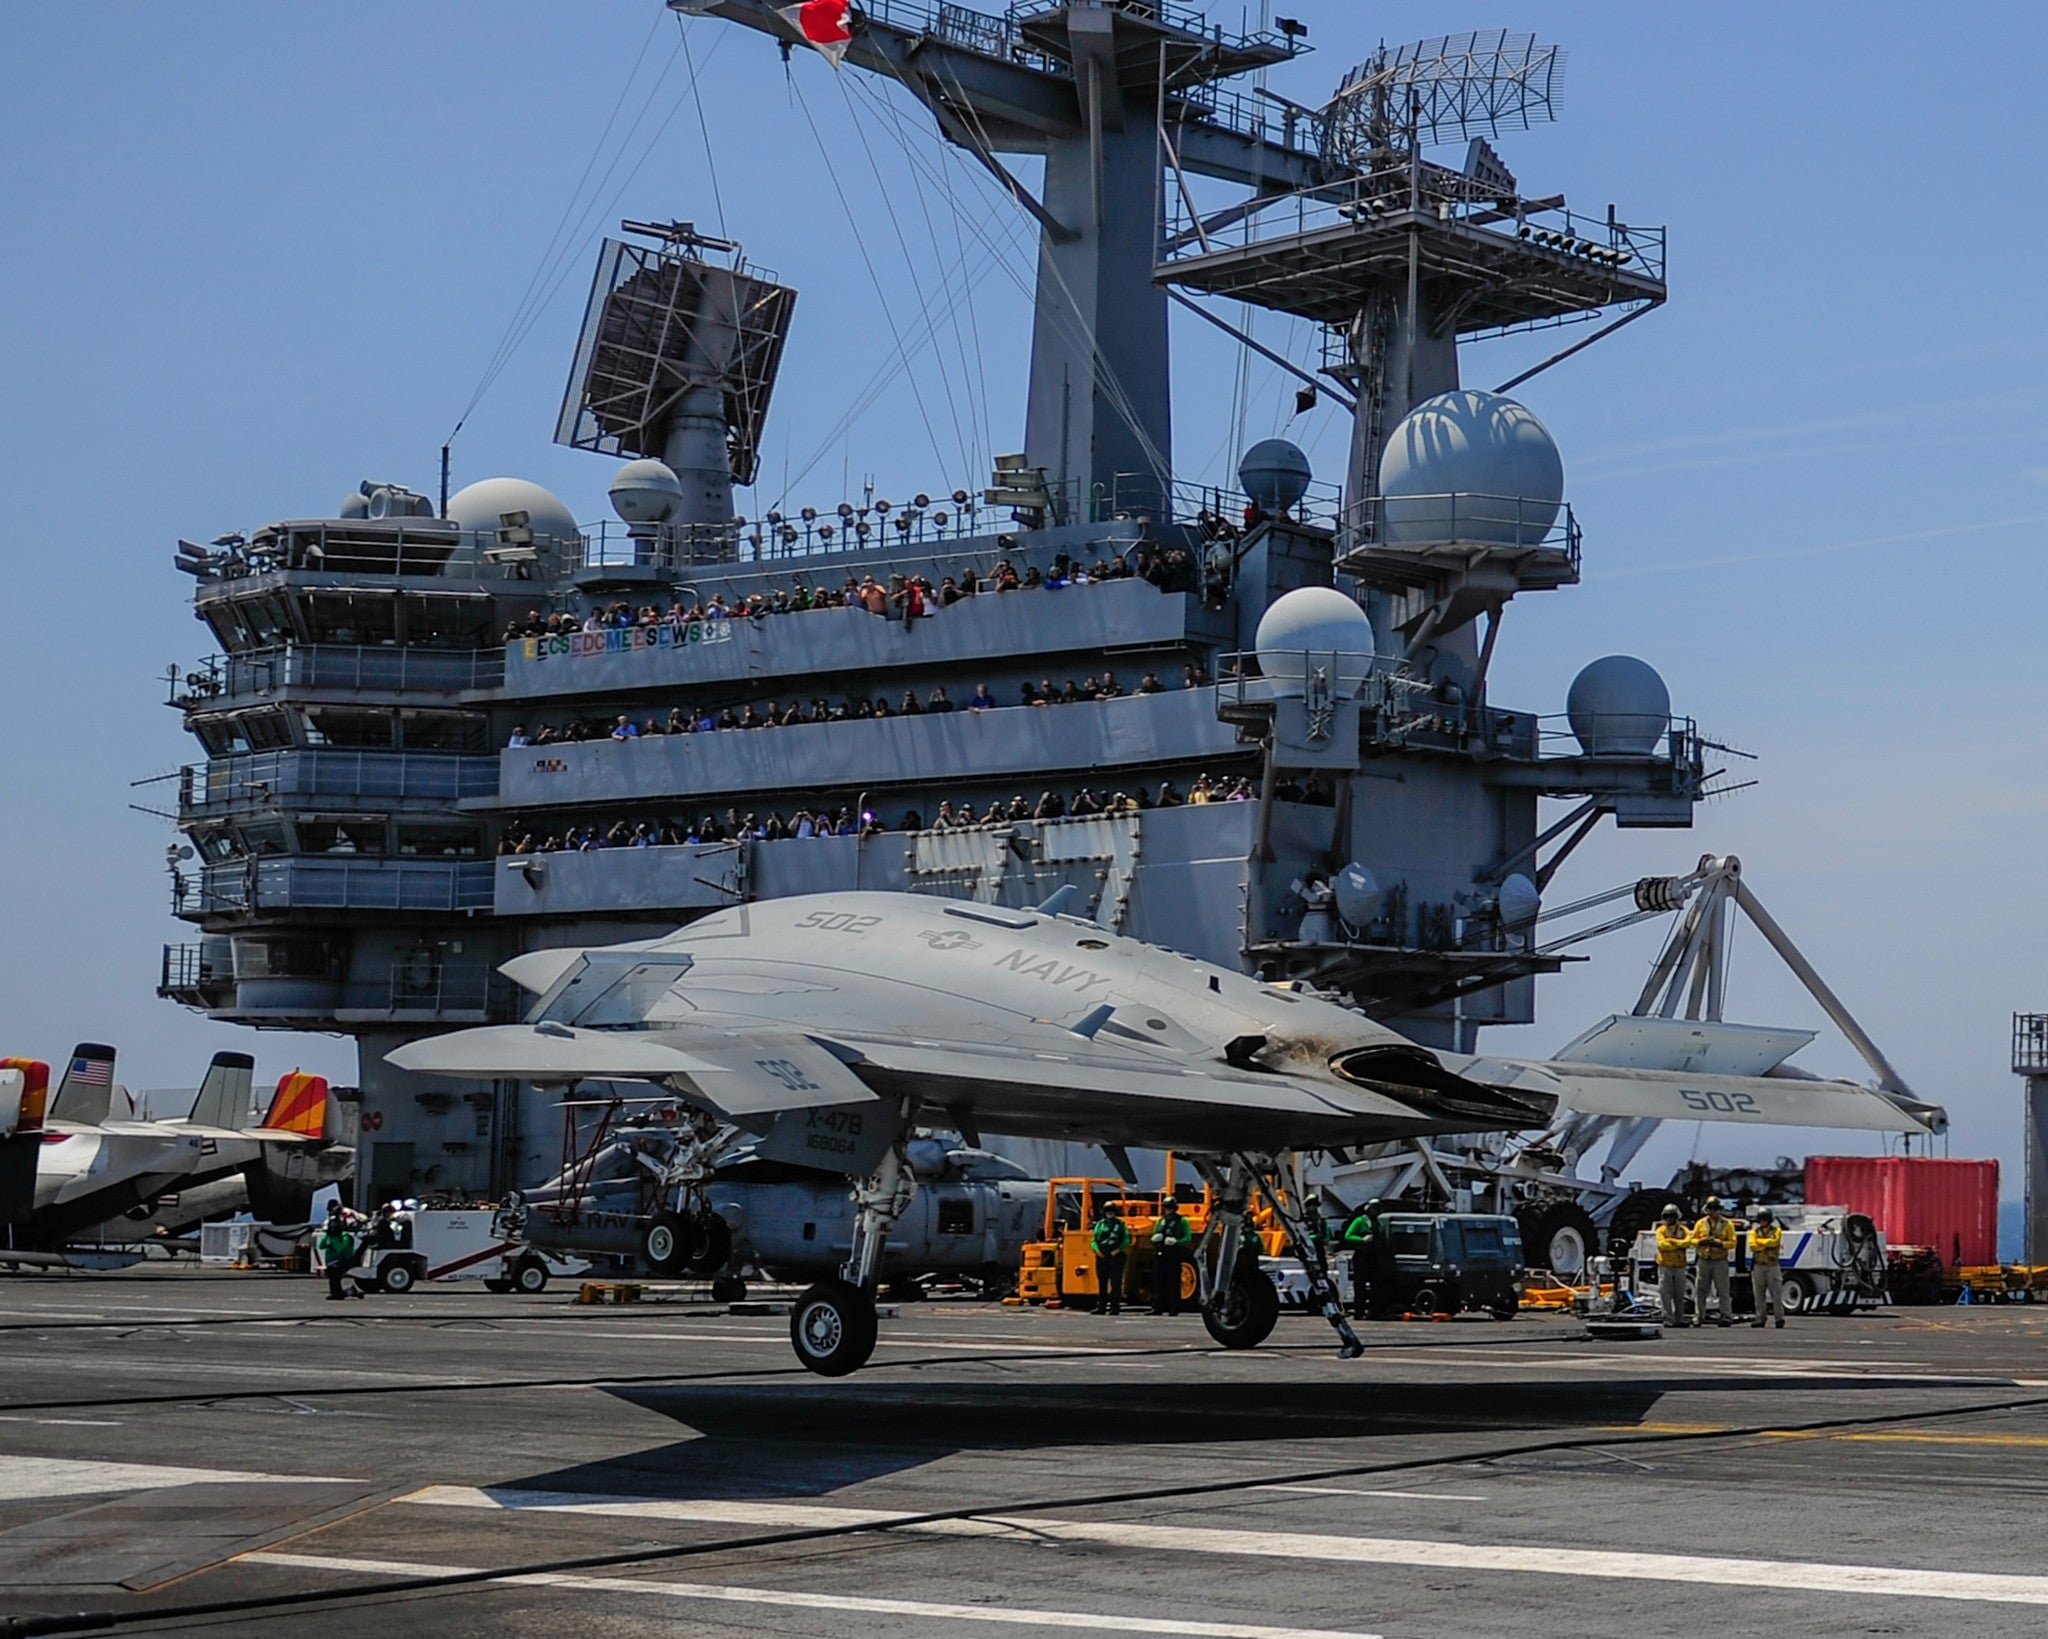 "X-47B Unmanned Combat Air System (UCAS) Lands USS George H.W. Bush CVN-77 Atlantic Ocean July 10, 2013 - 8 x 10"" Photograph"